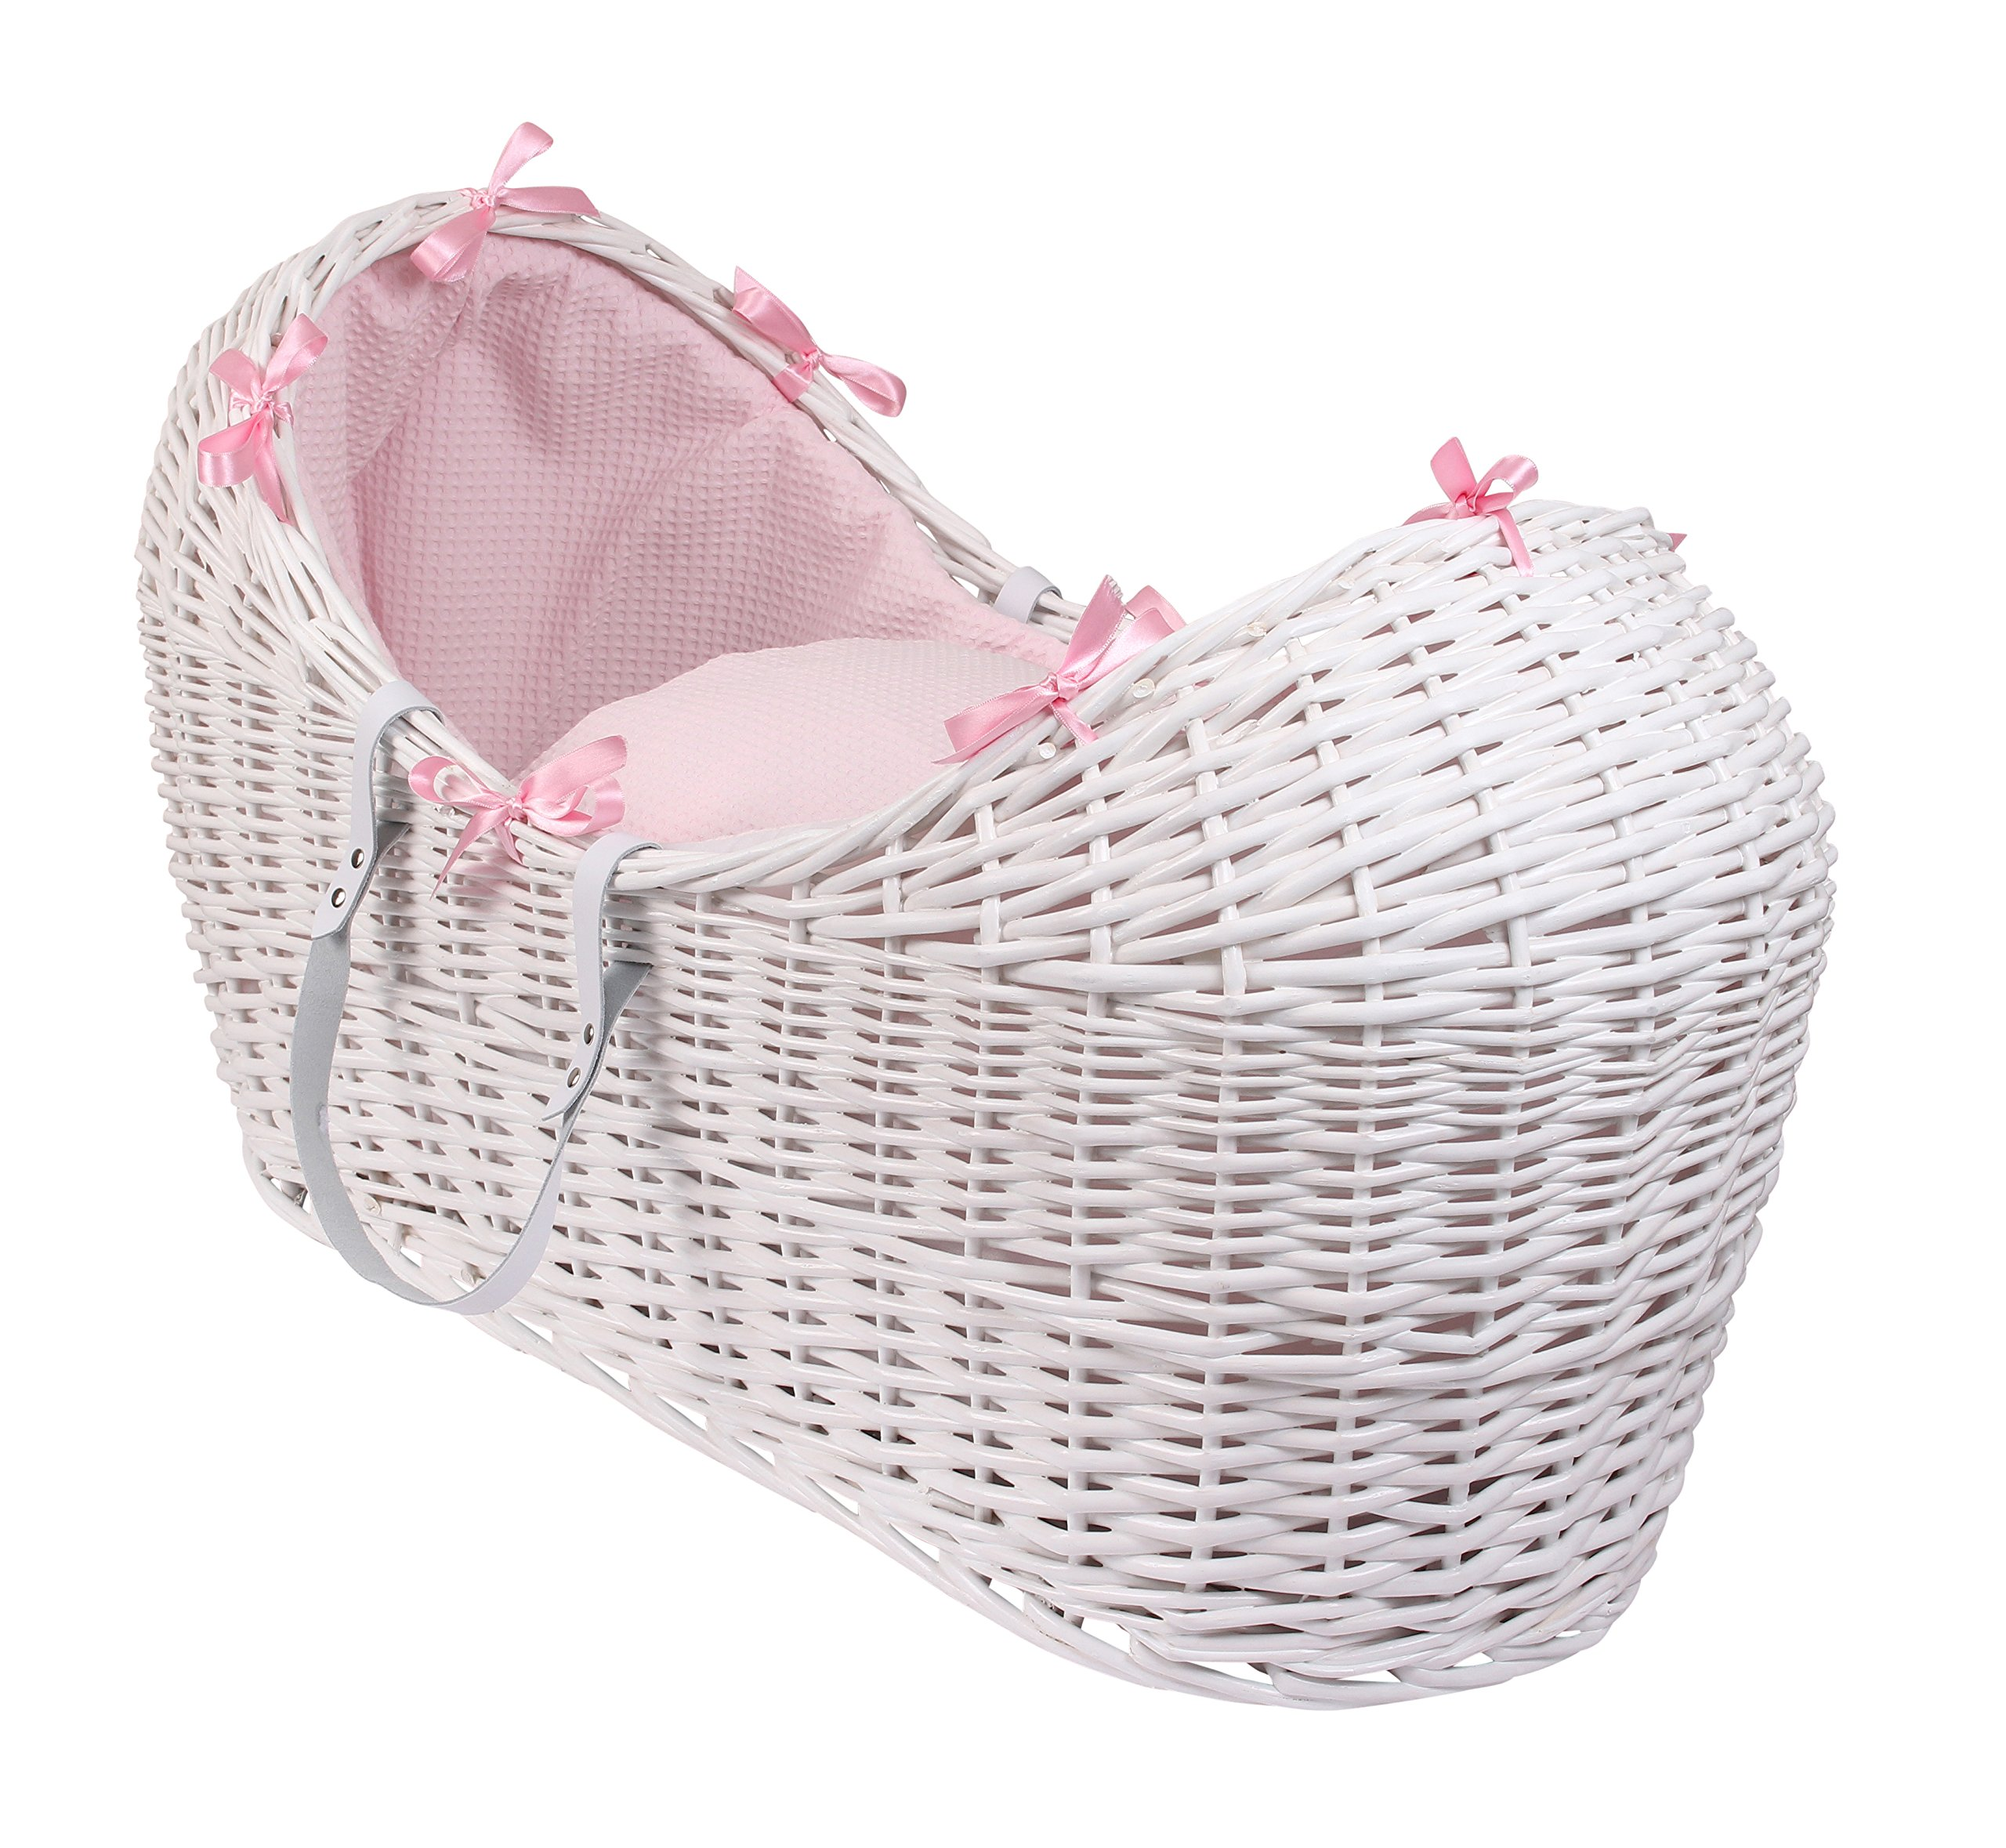 Waffle White Wicker Noah Pod - Pink  A contemporary Moses basket design exclusive to Clair de Lune that creates a cocooned & calming sleeping space for baby. Comes complete with padded liner, delicately embroidered 2.0 tog coverlet and mattress. Dressings are made from super soft and breathable Waffle cotton fabrics. 1